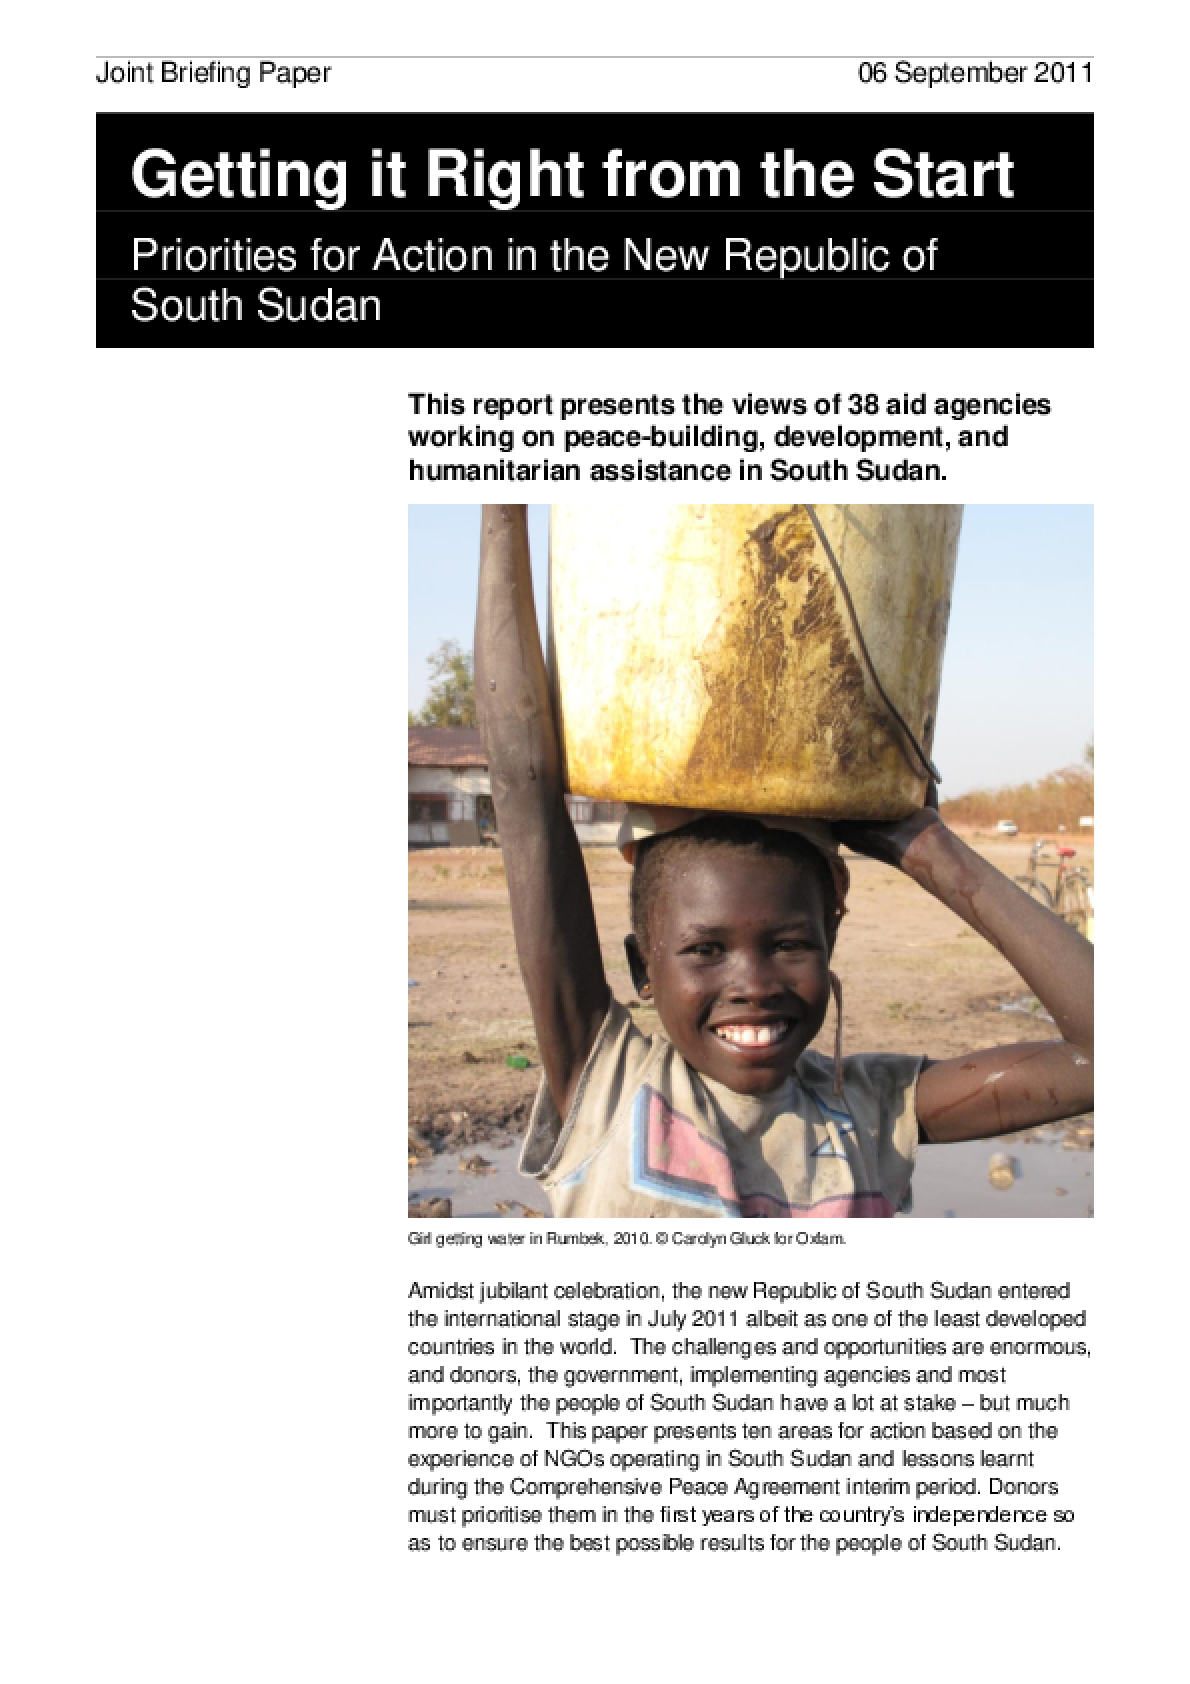 Getting it Right from the Start: Priorities for action in the new Republic of South Sudan